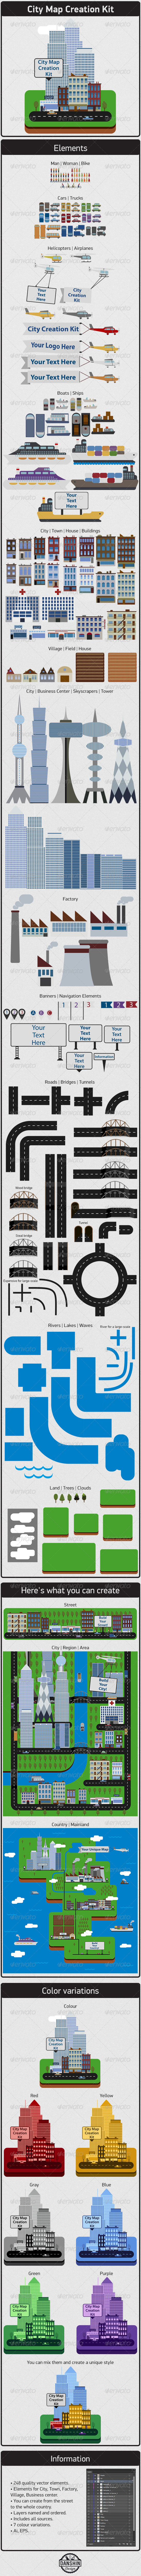 GraphicRiver City Map Creation Kit 4614066